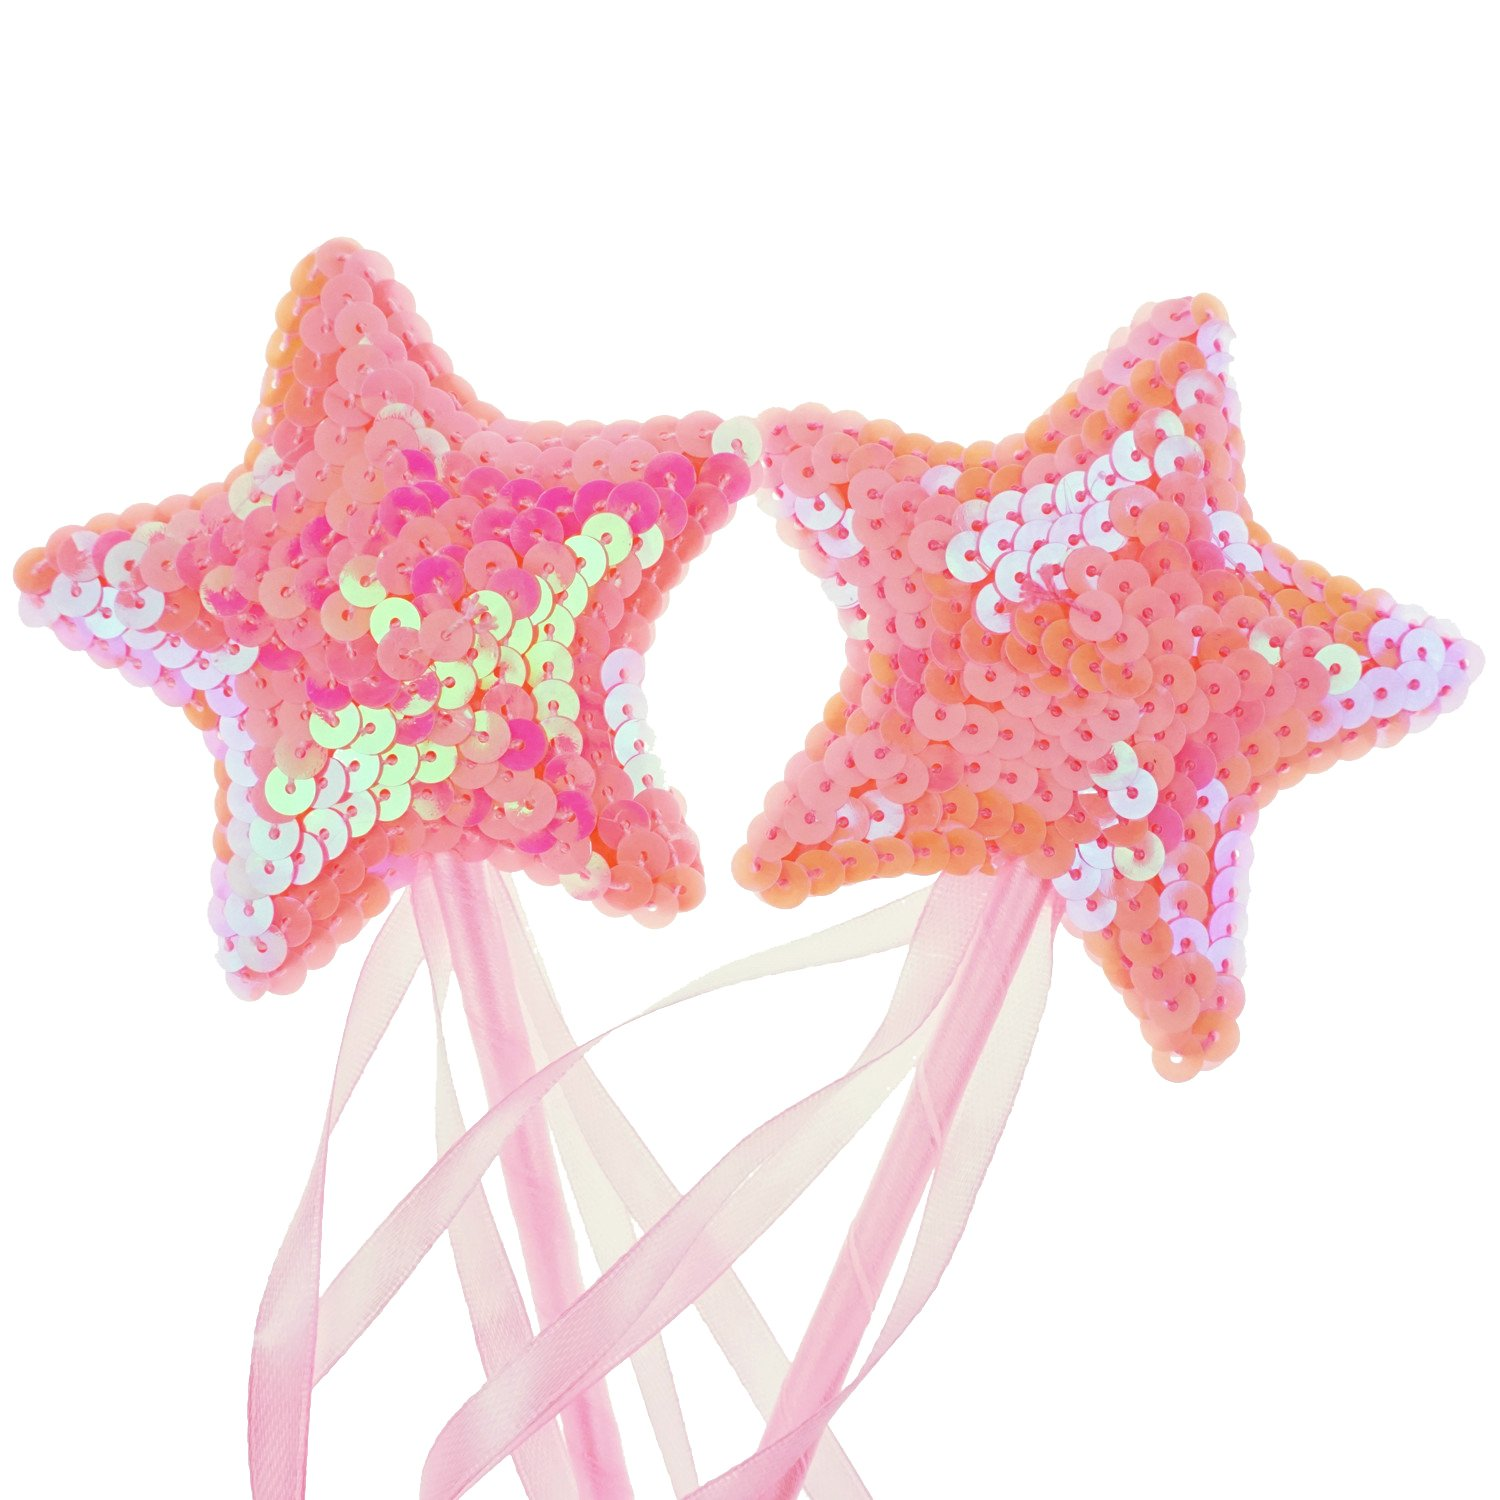 2 Counting Bilipala Pink Star Magic Wands Fairy Princess Wand for Kids Birthday Baby Shower Party Supplies